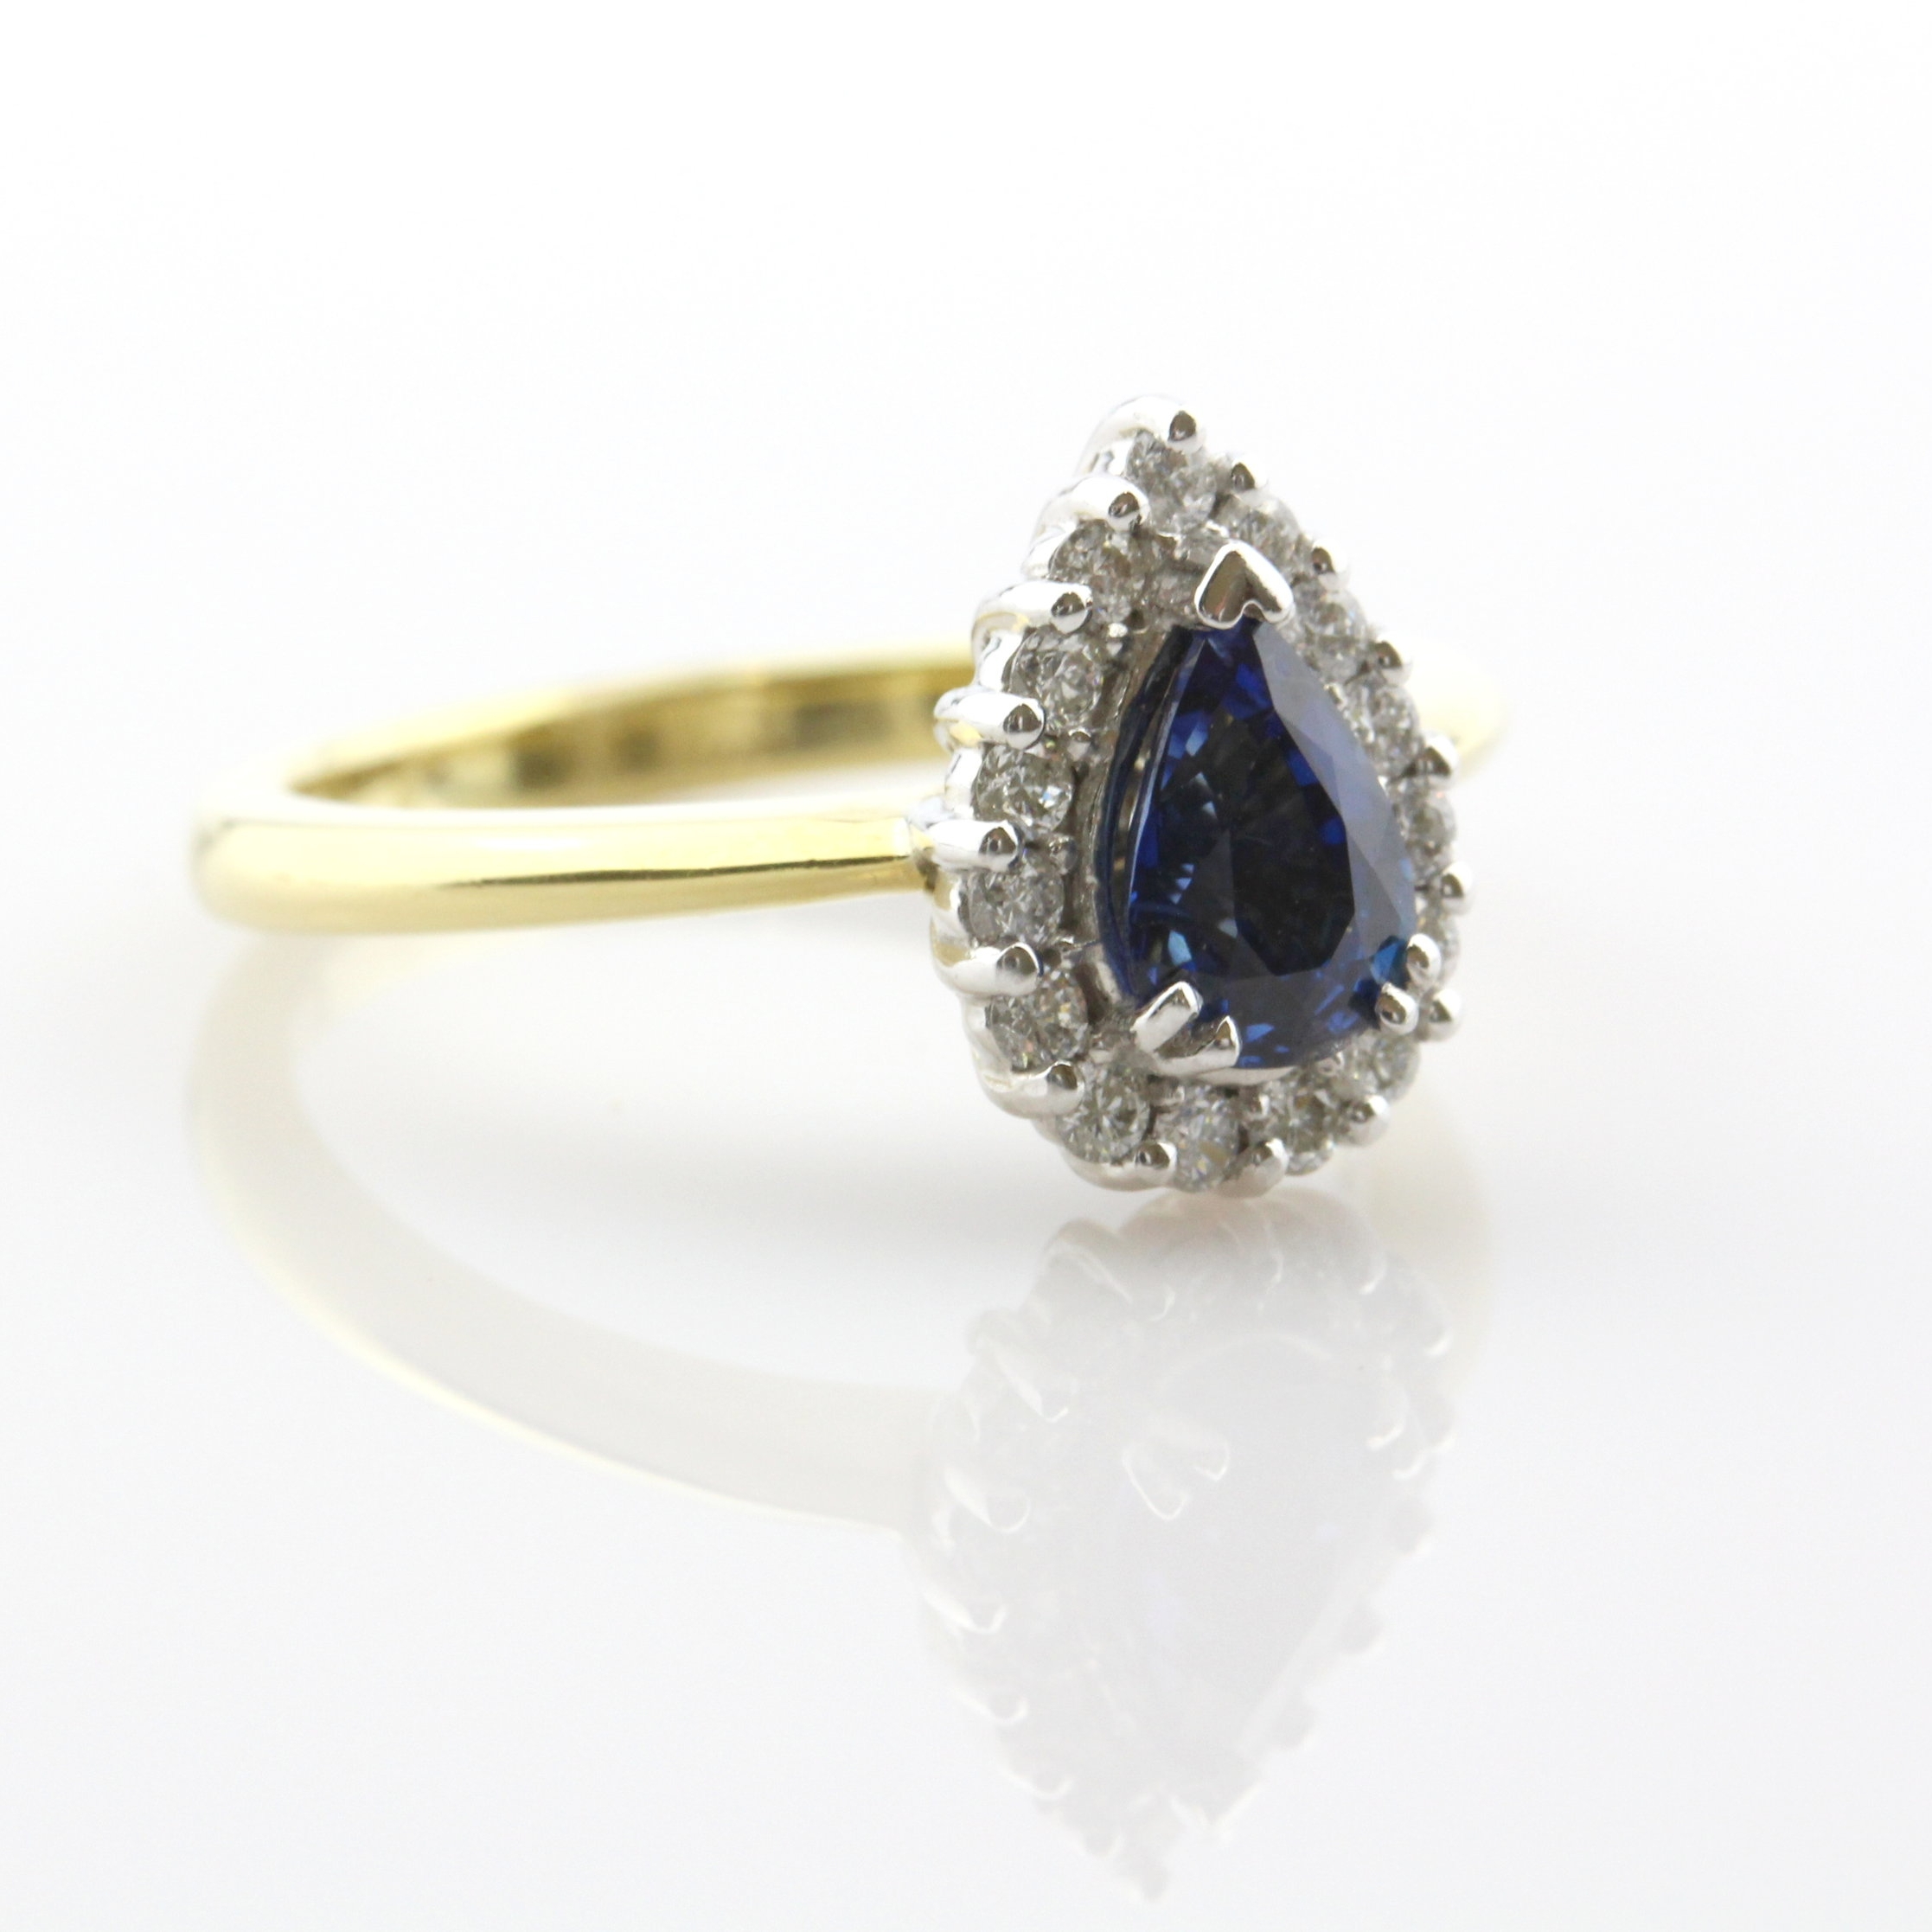 Double claw set pear shaped ceylon sapphire with diamond cluster in white gold ring.